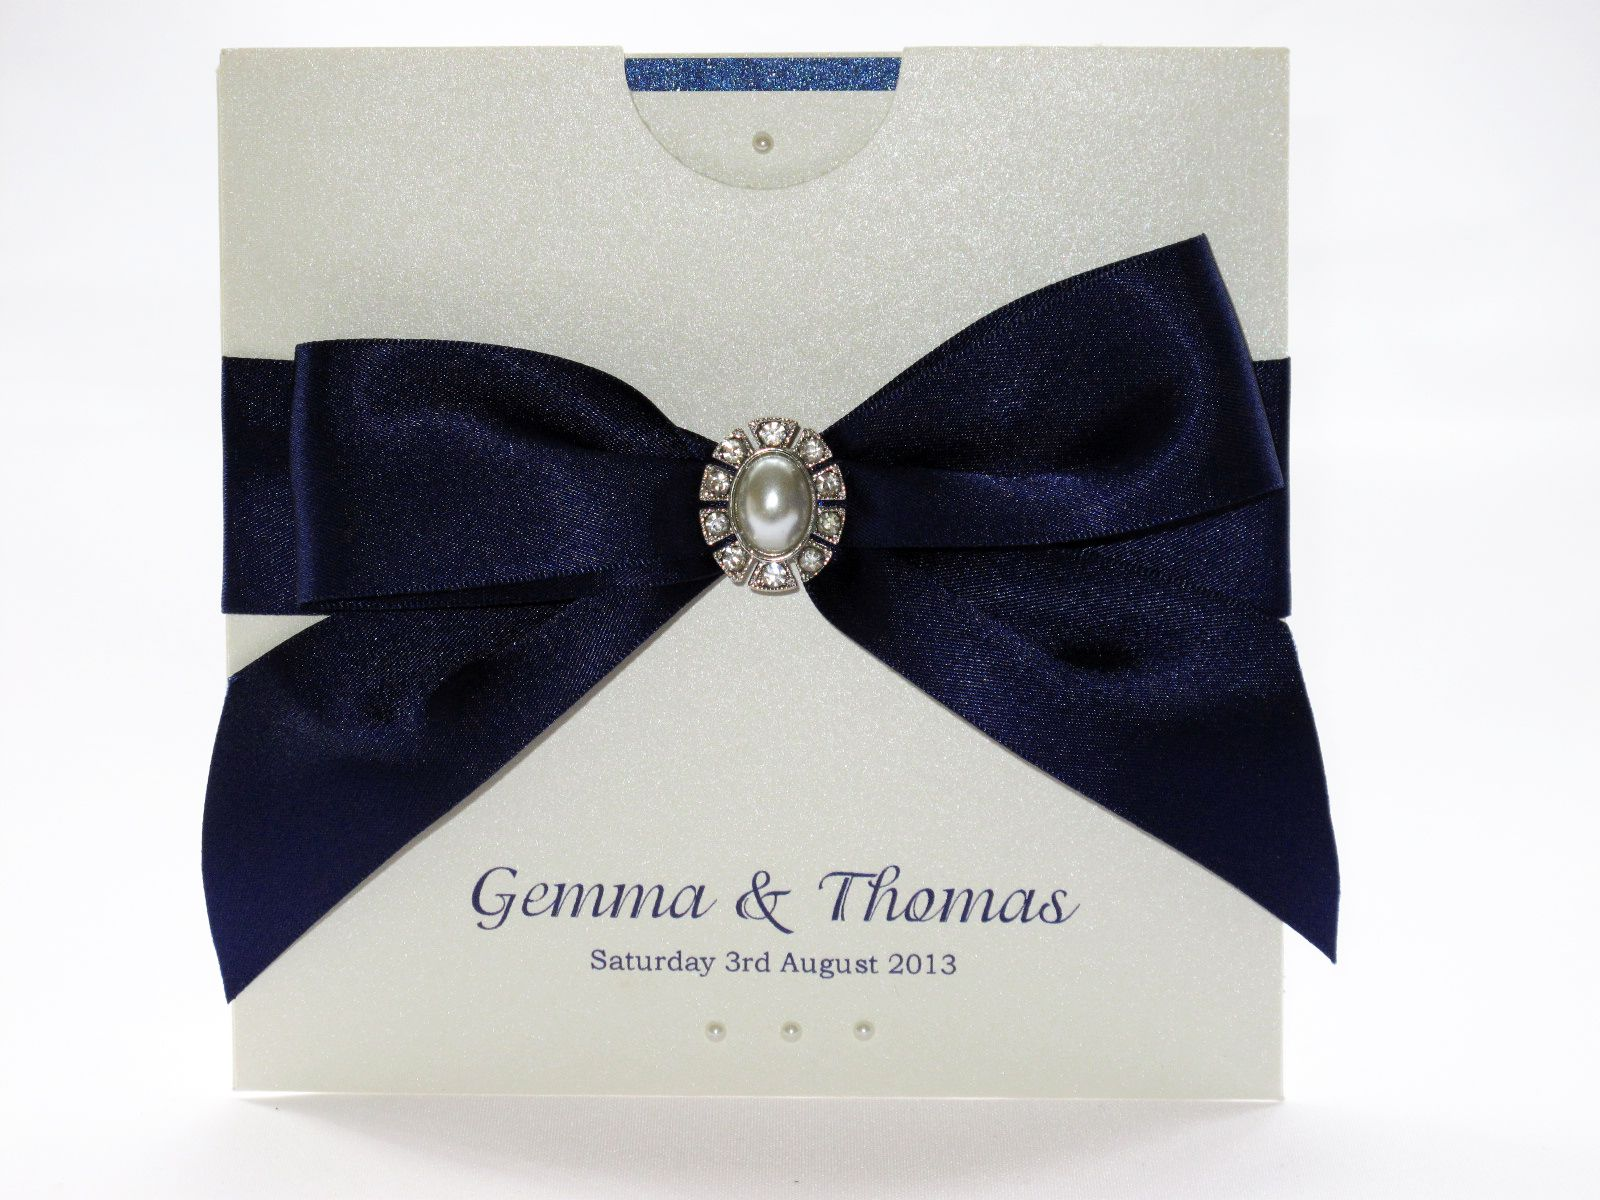 tie ribbon wedding invitation%0A Navy blue bow and pearl wallet wedding invitation by Sweetheart Stationery